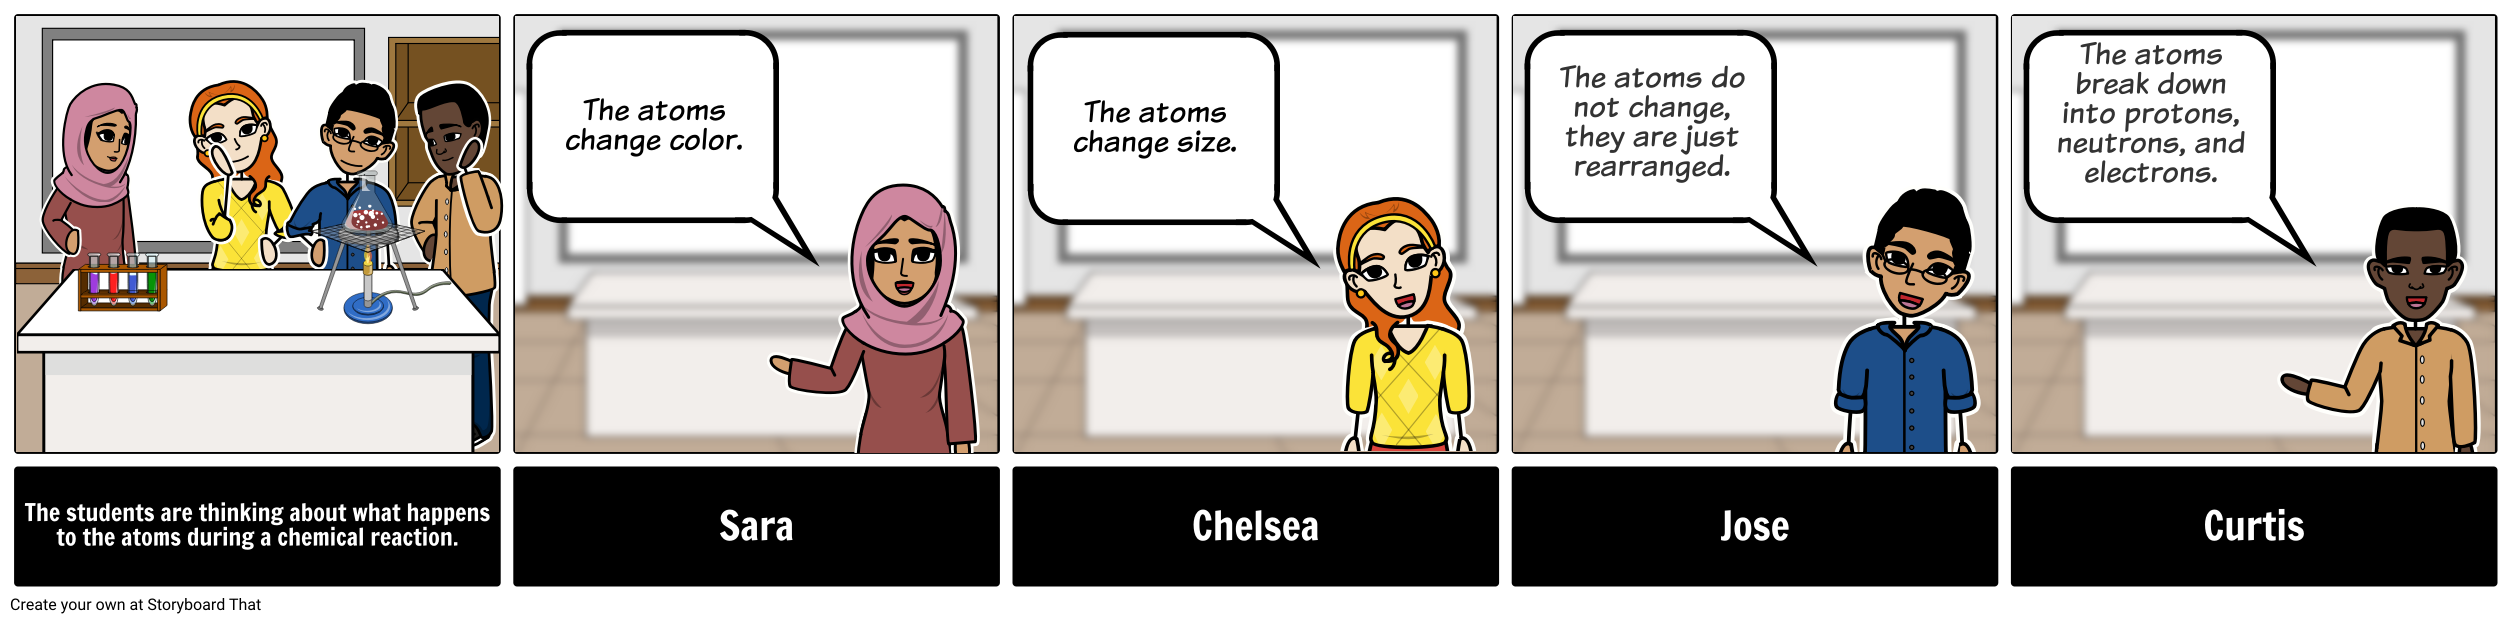 Discussion Storyboard - MS - Chemical Reactions